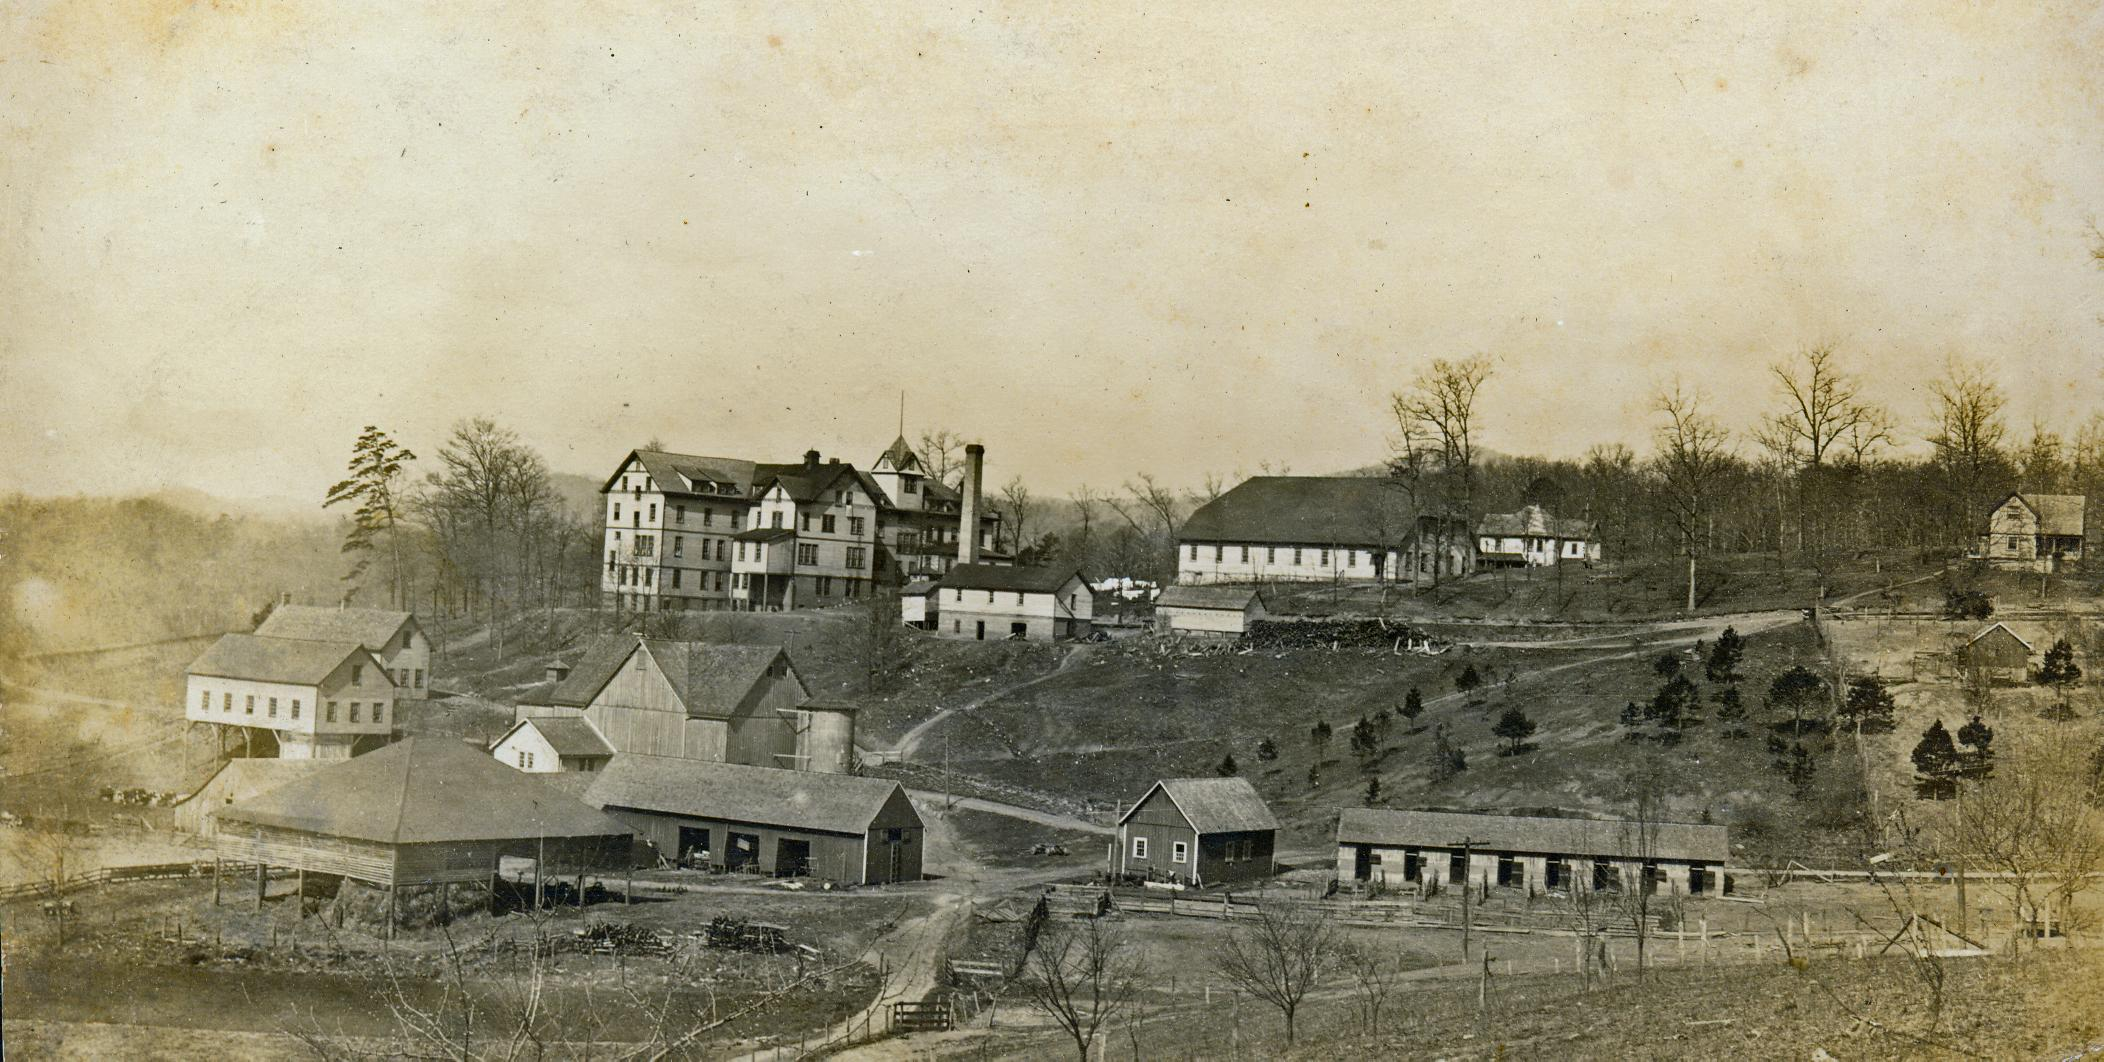 After 123 years, Warren Wilson College is still uncovering more about its roots. Soon, a recently discovered farm school ledger will be scanned and made available to the public.  The book is connecting some interested dots in Appalachian history. (Photo credit: Warren Wilson College Archives)